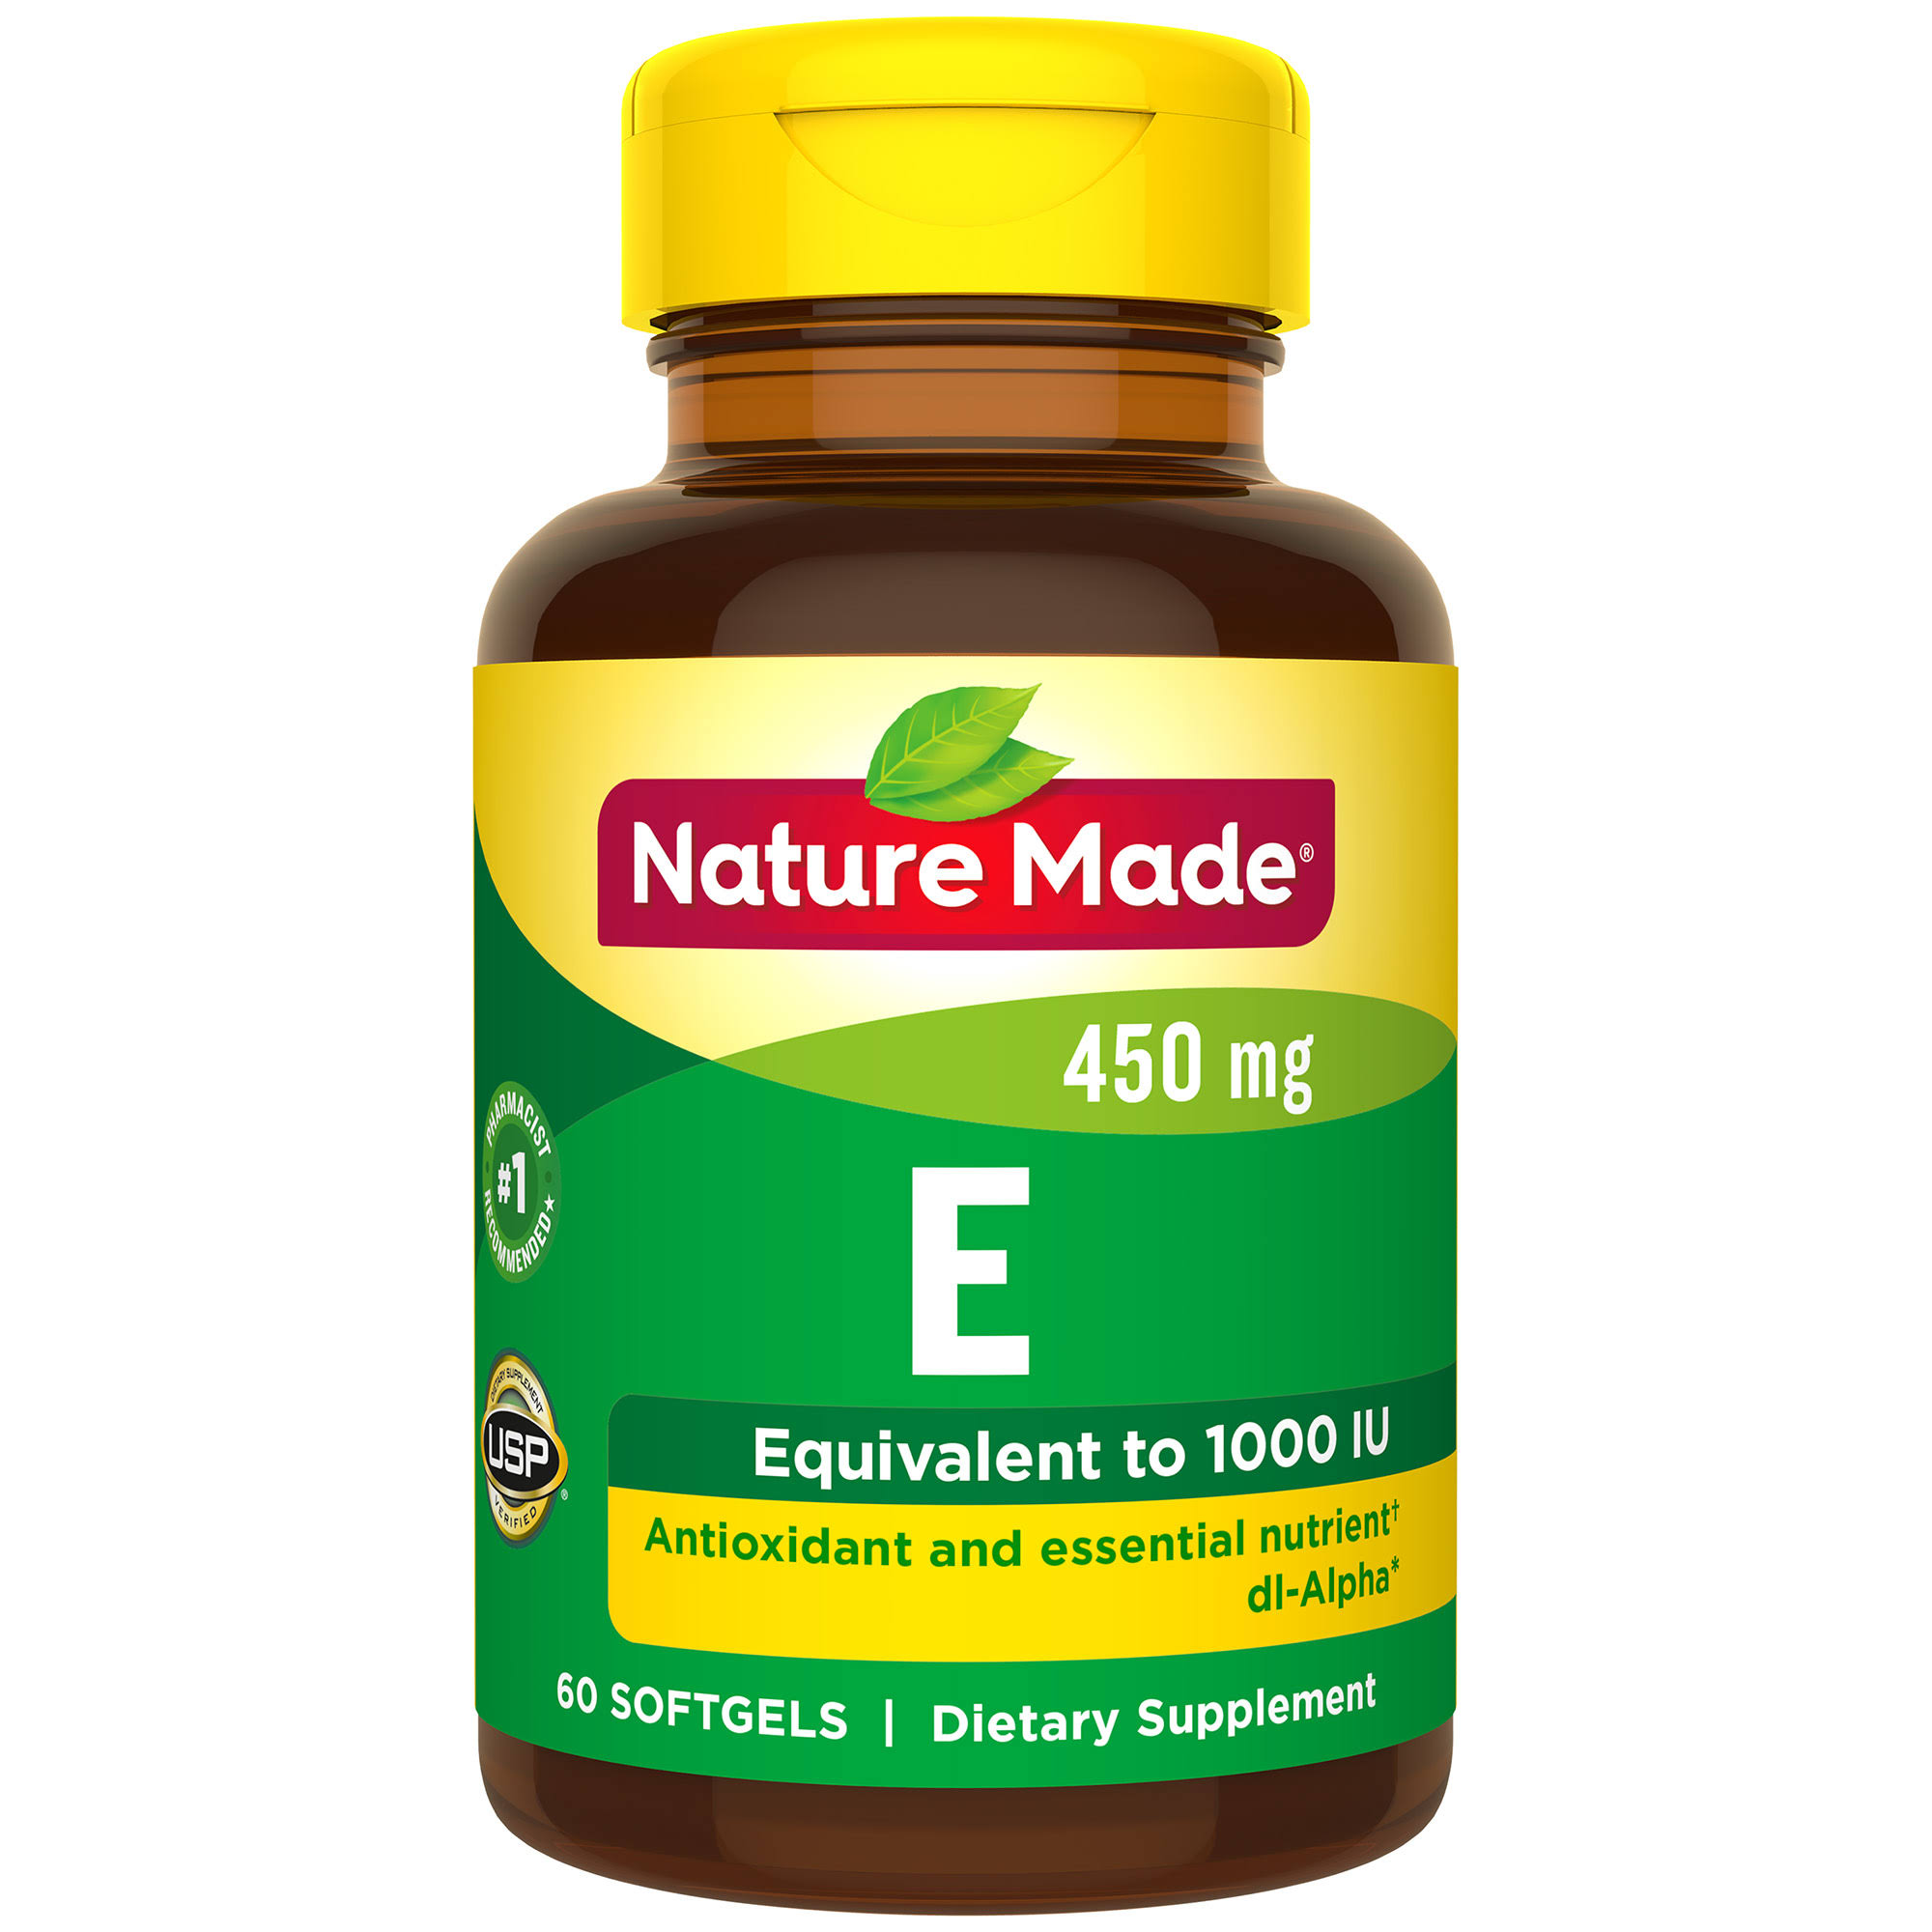 Nature Made Vitamin E 1000iu Dietary Supplement - 60 Softgels